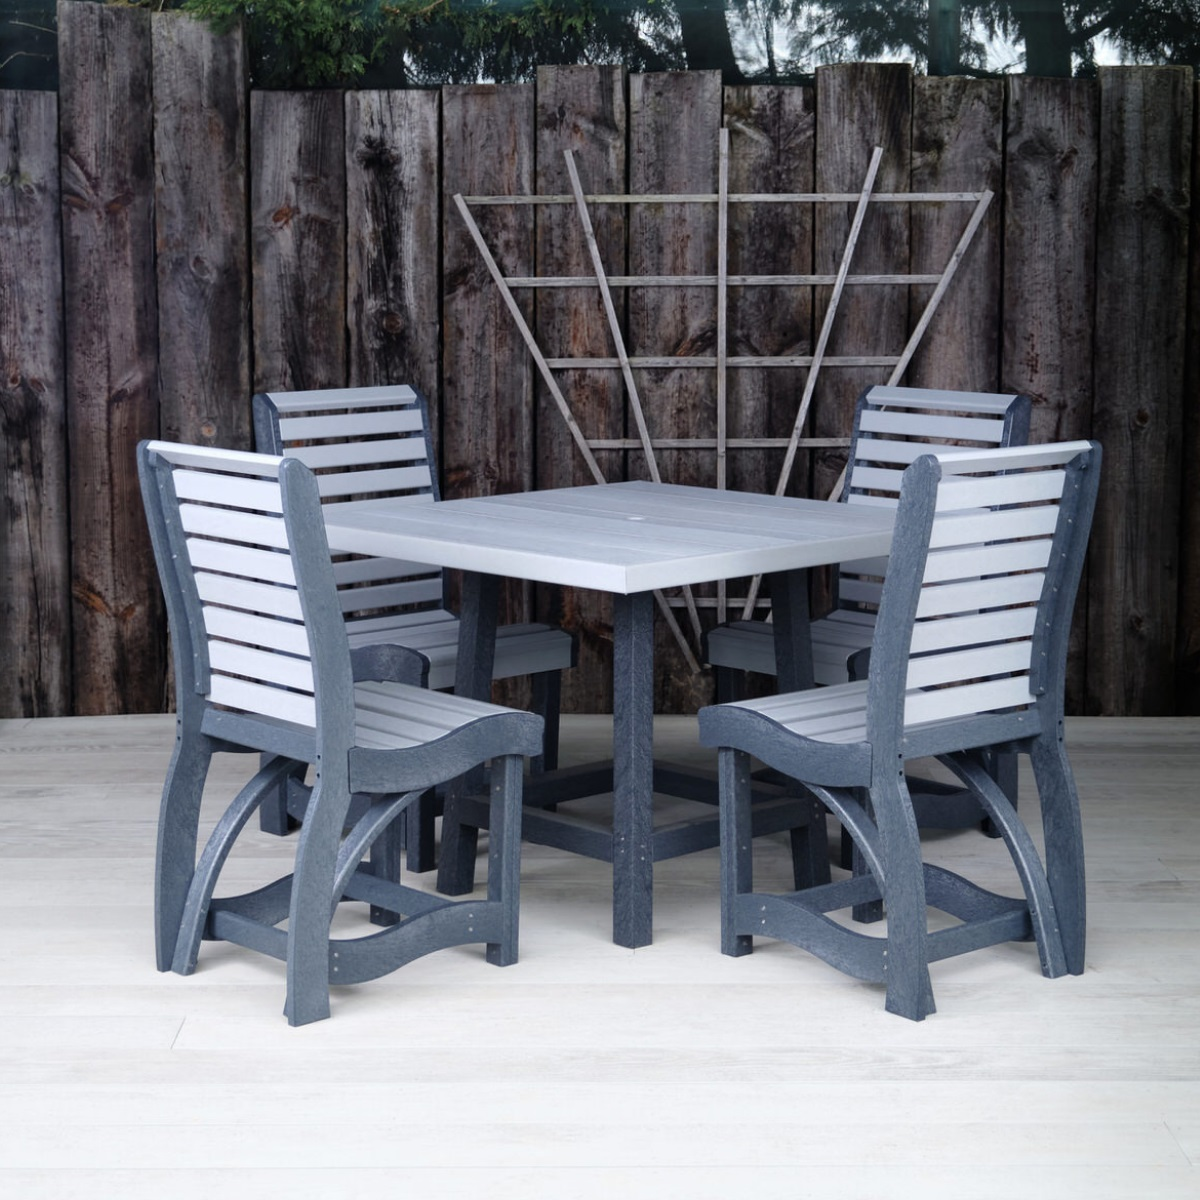 Recycled Plastic Outdoor Square Dining Table and Chairs